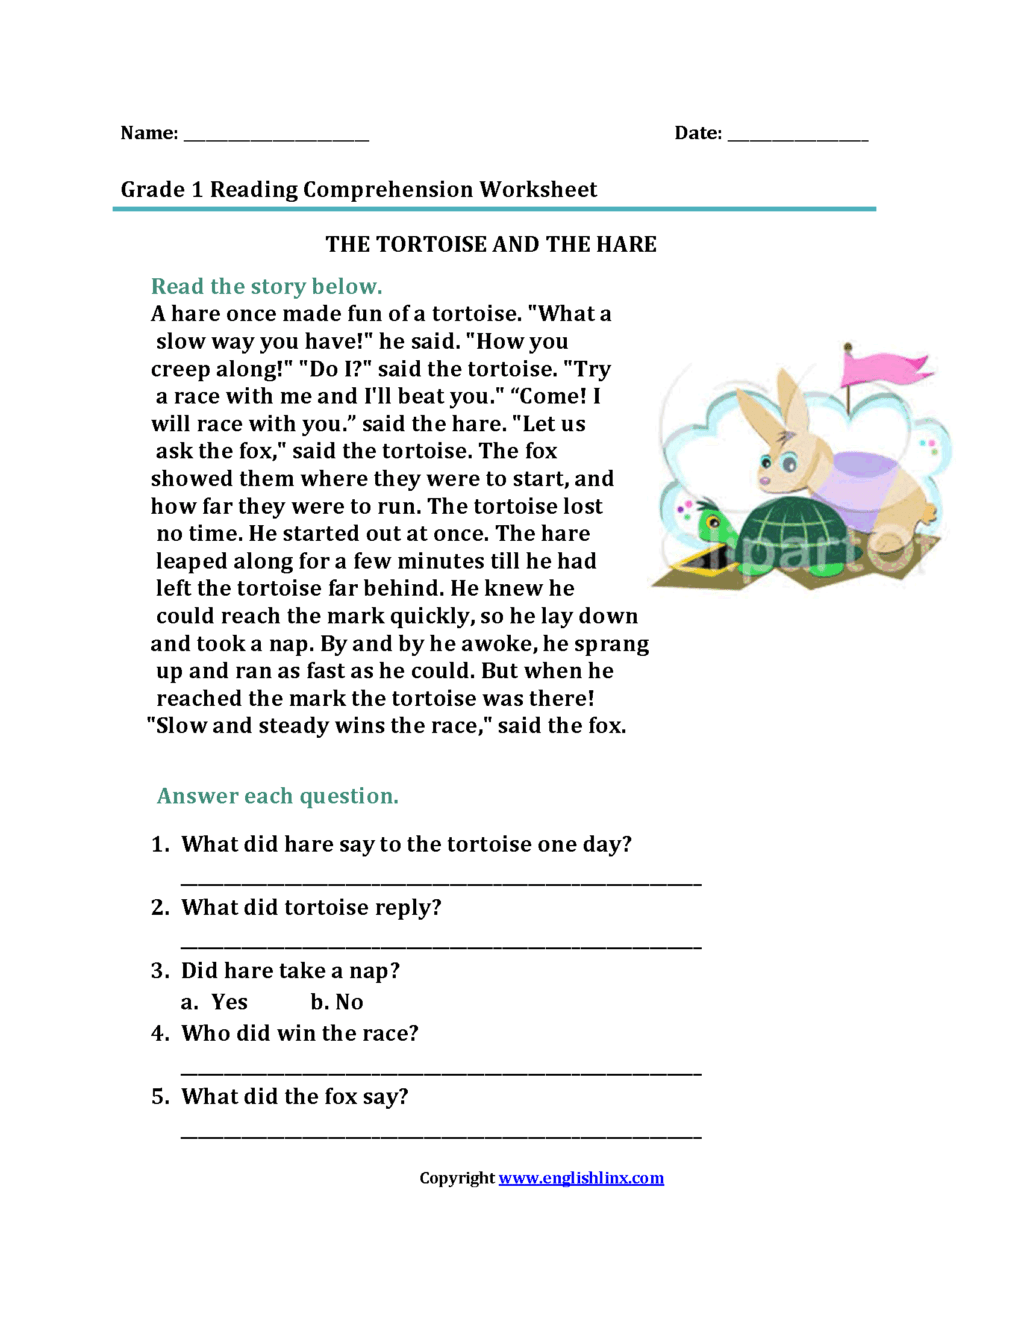 Free Middle School Reading Comprehension Worksheets